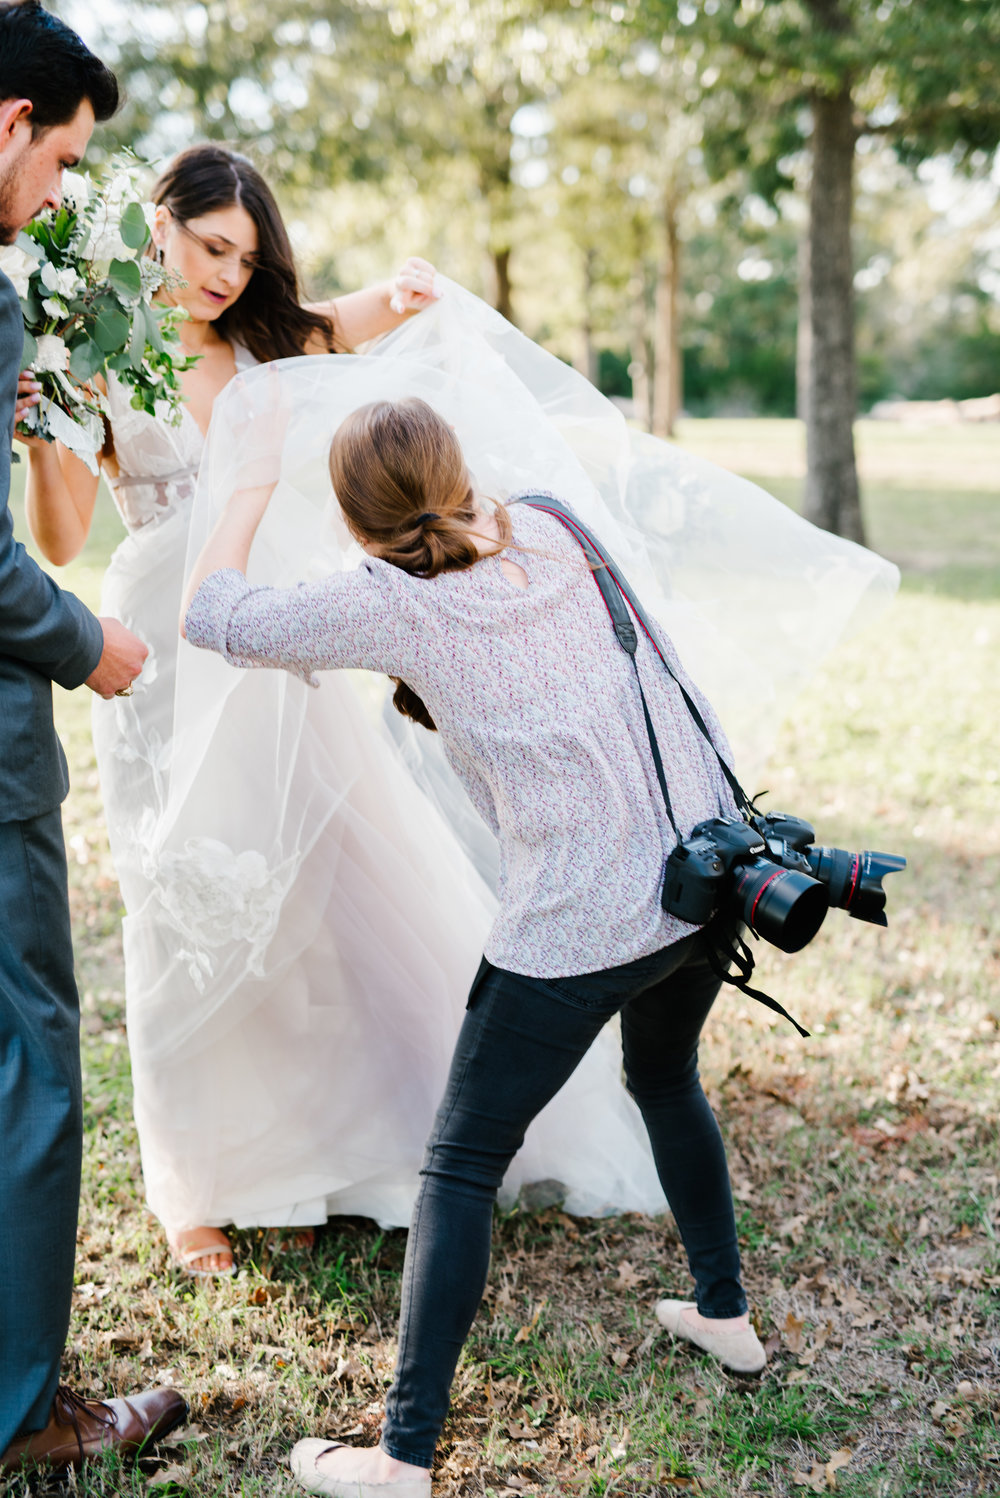 This is what it looks like when a bug gets in my bride's tulle. I do this so often! LOL